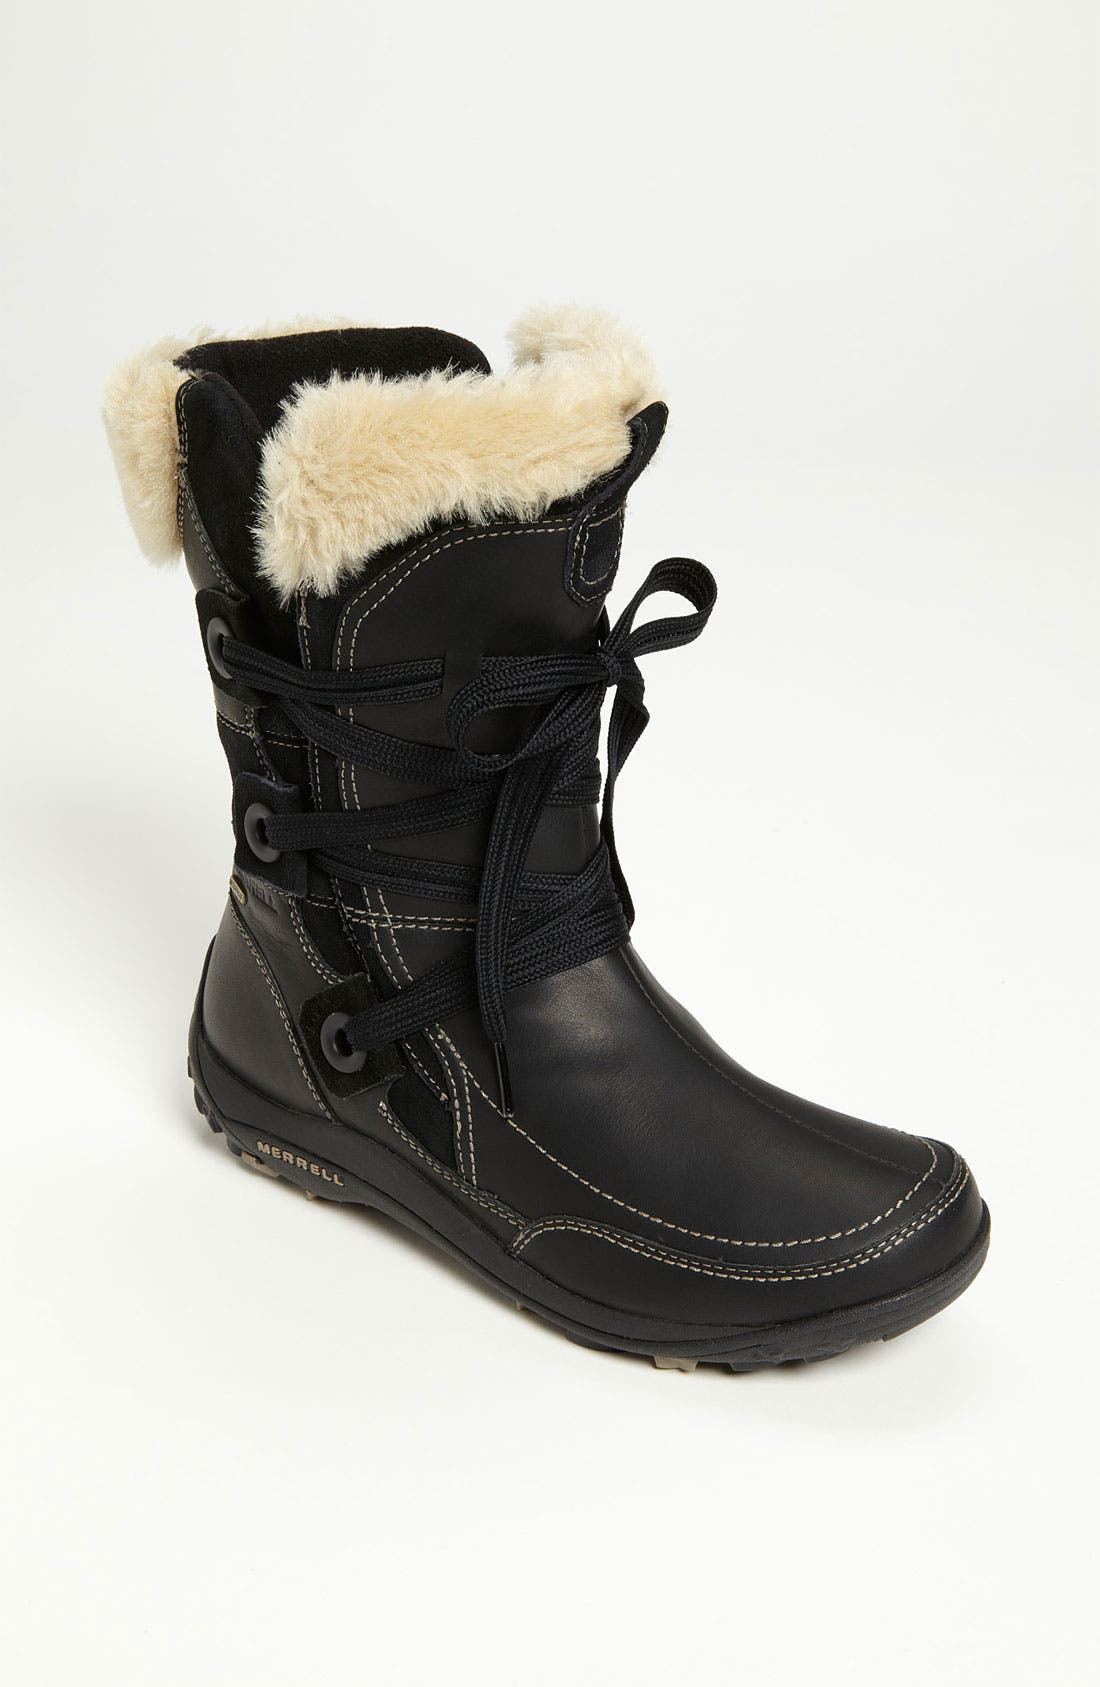 Main Image - Merrell 'Nikita' Waterproof Boot